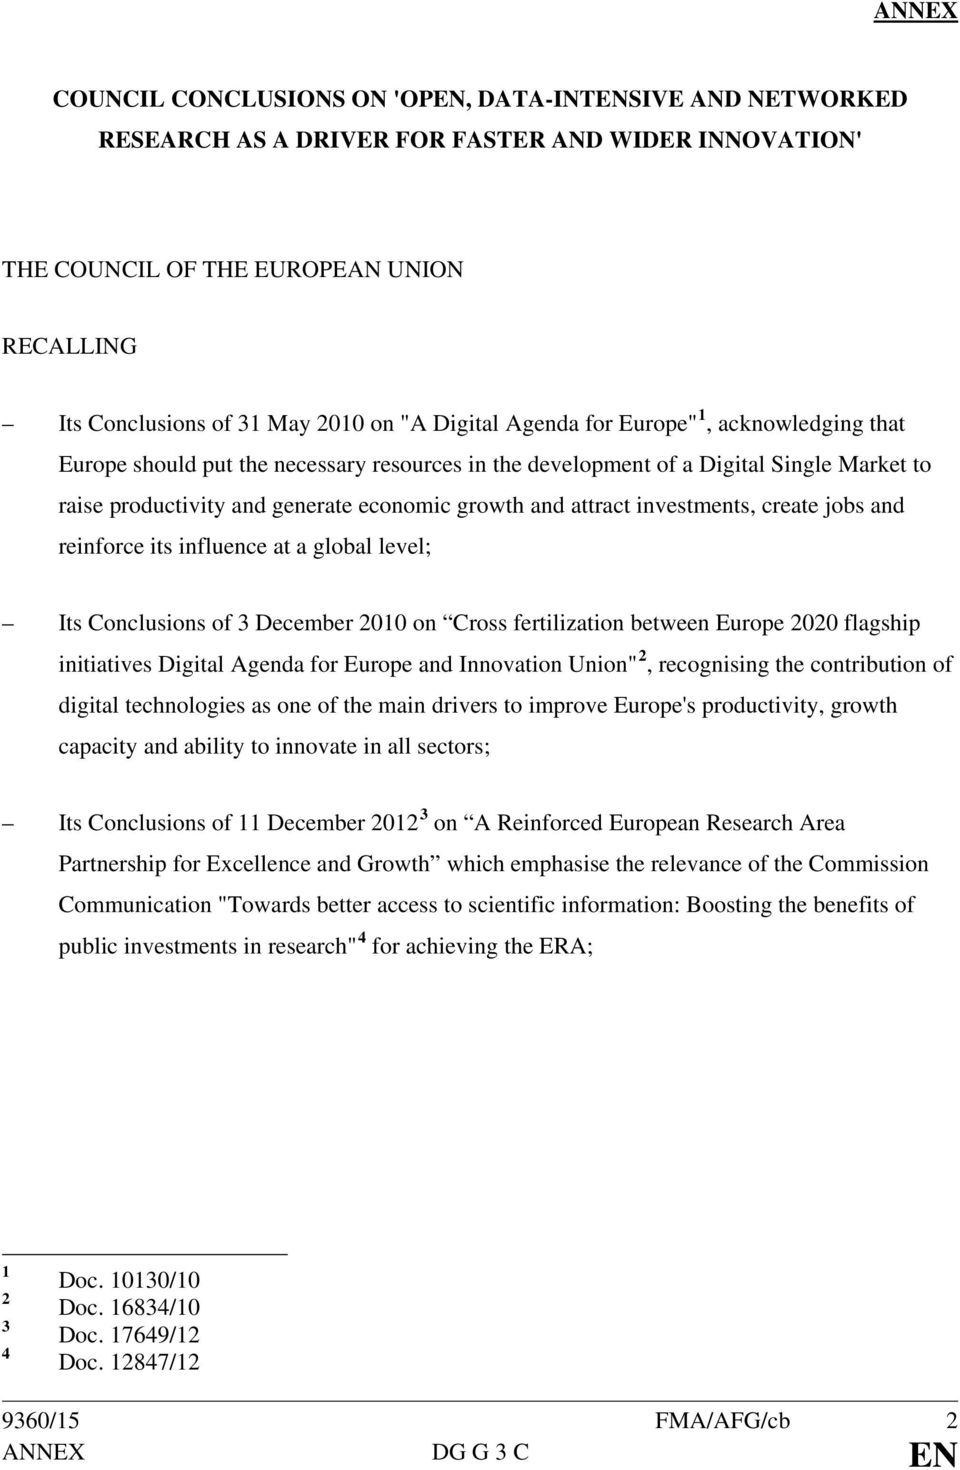 investments, create jobs and reinforce its influence at a global level; Its Conclusions of 3 December 2010 on Cross fertilization between Europe 2020 flagship initiatives Digital Agenda for Europe